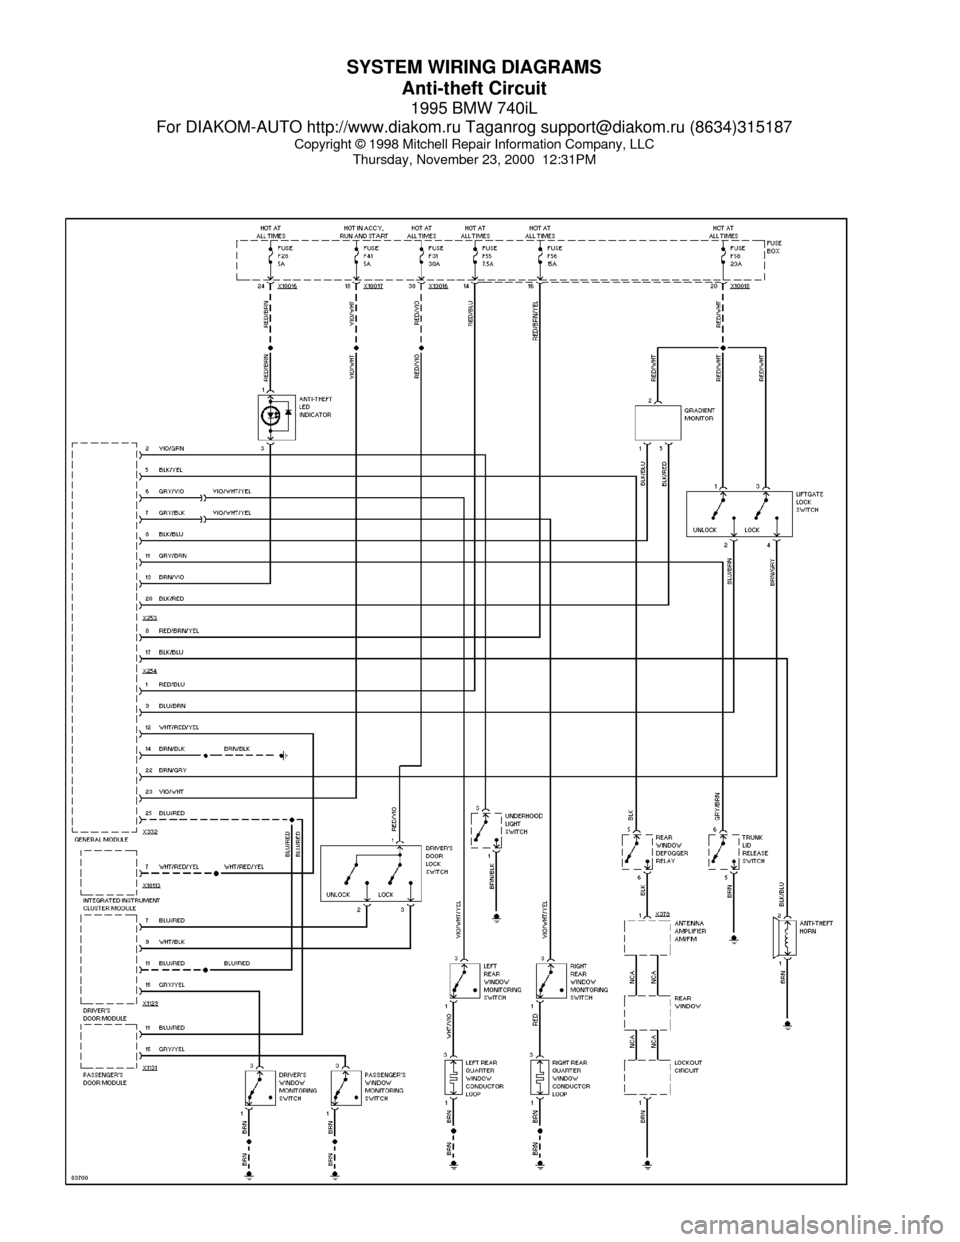 bmw 740il 1995 e38 system wiring diagrams window wire diagram 1996 toyota camry wire diagram 1996 bmw 740il